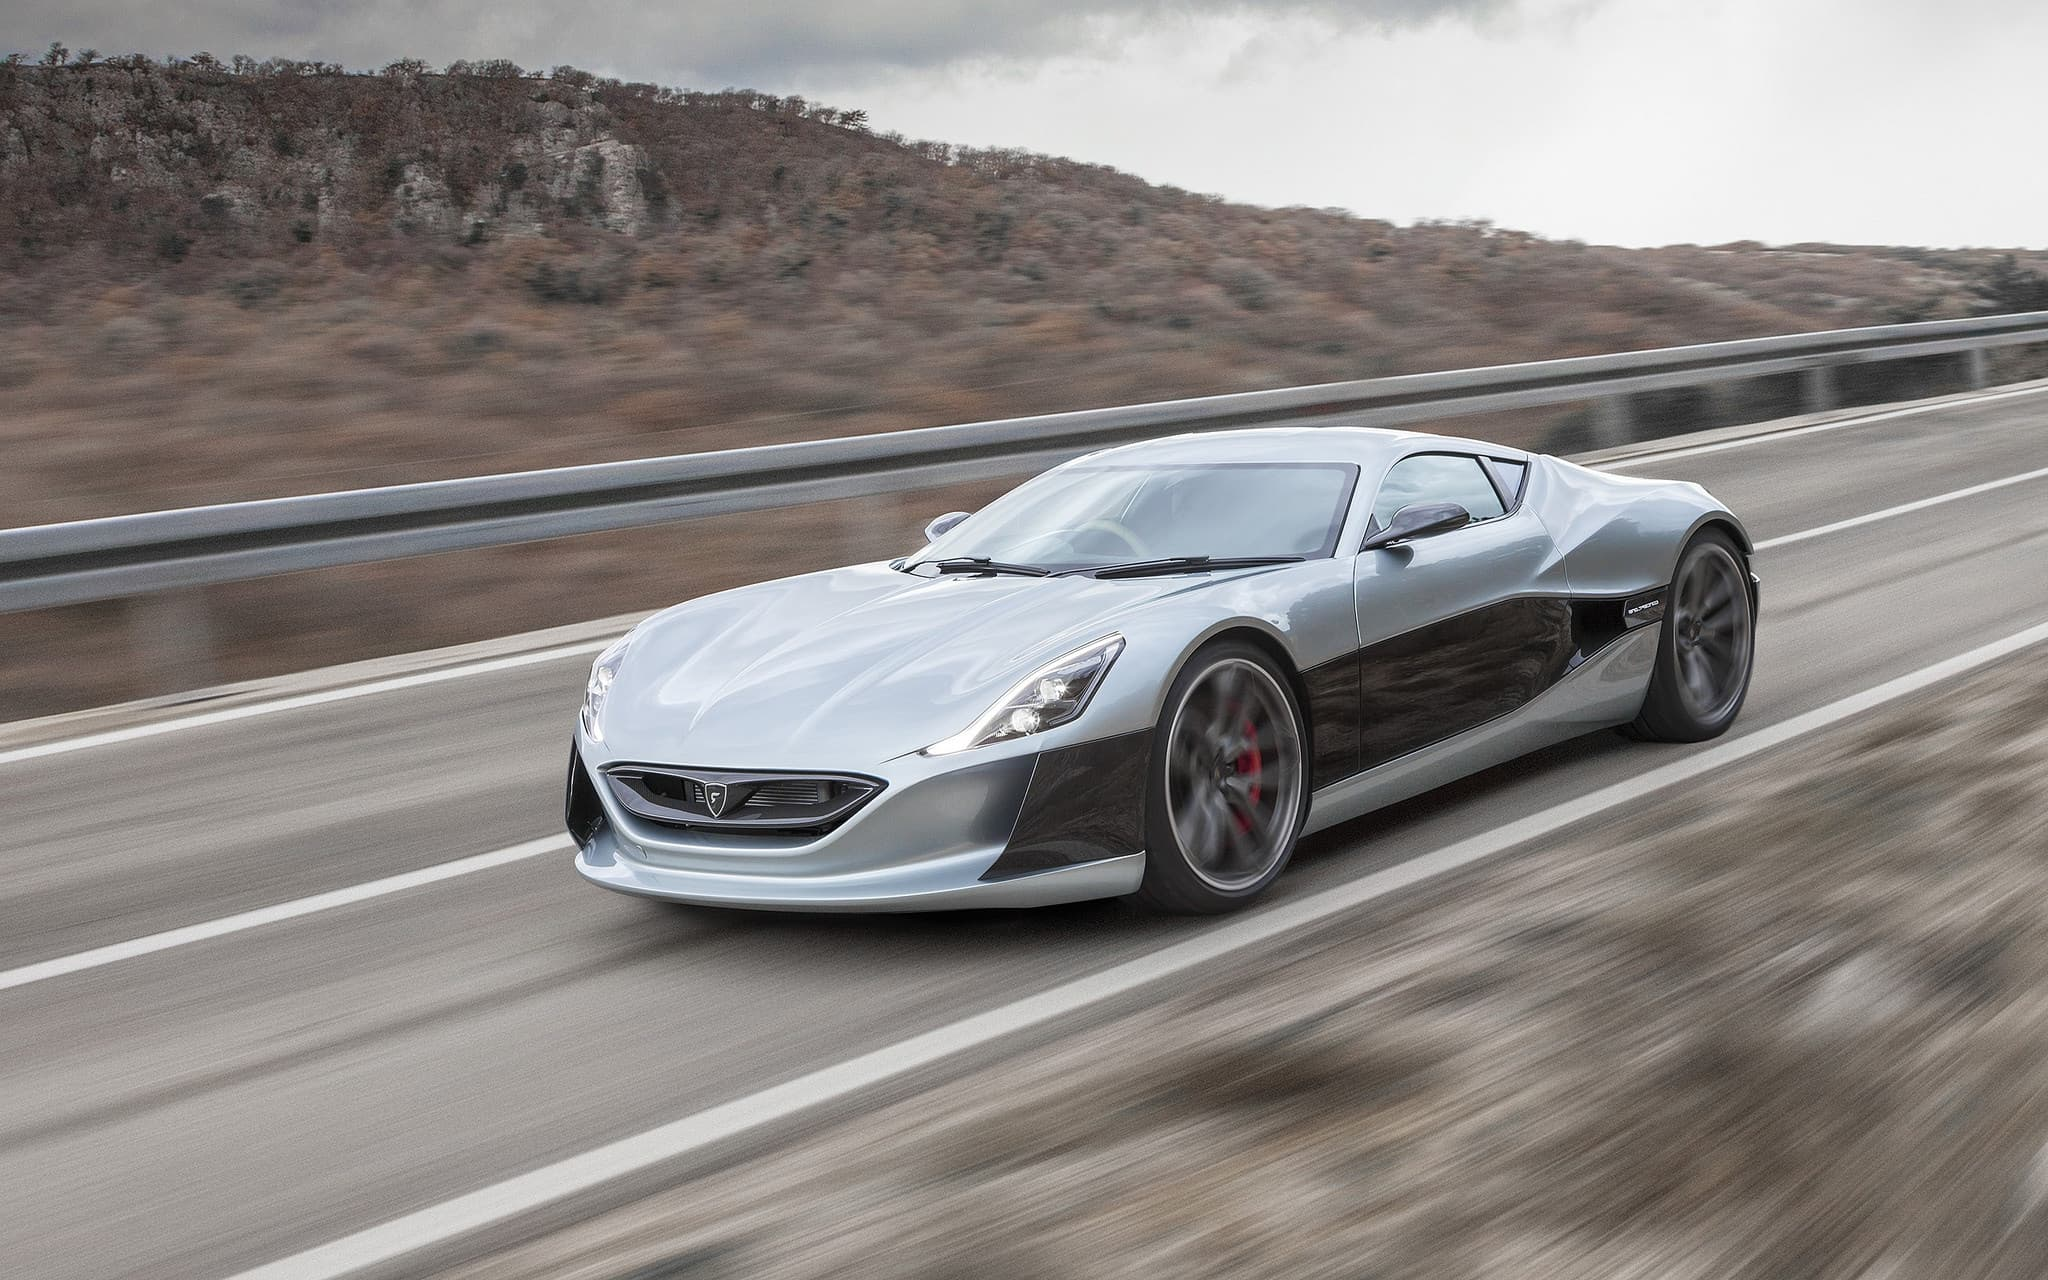 Rimac Concept One 2016 Wallpapers HD Design, Interior